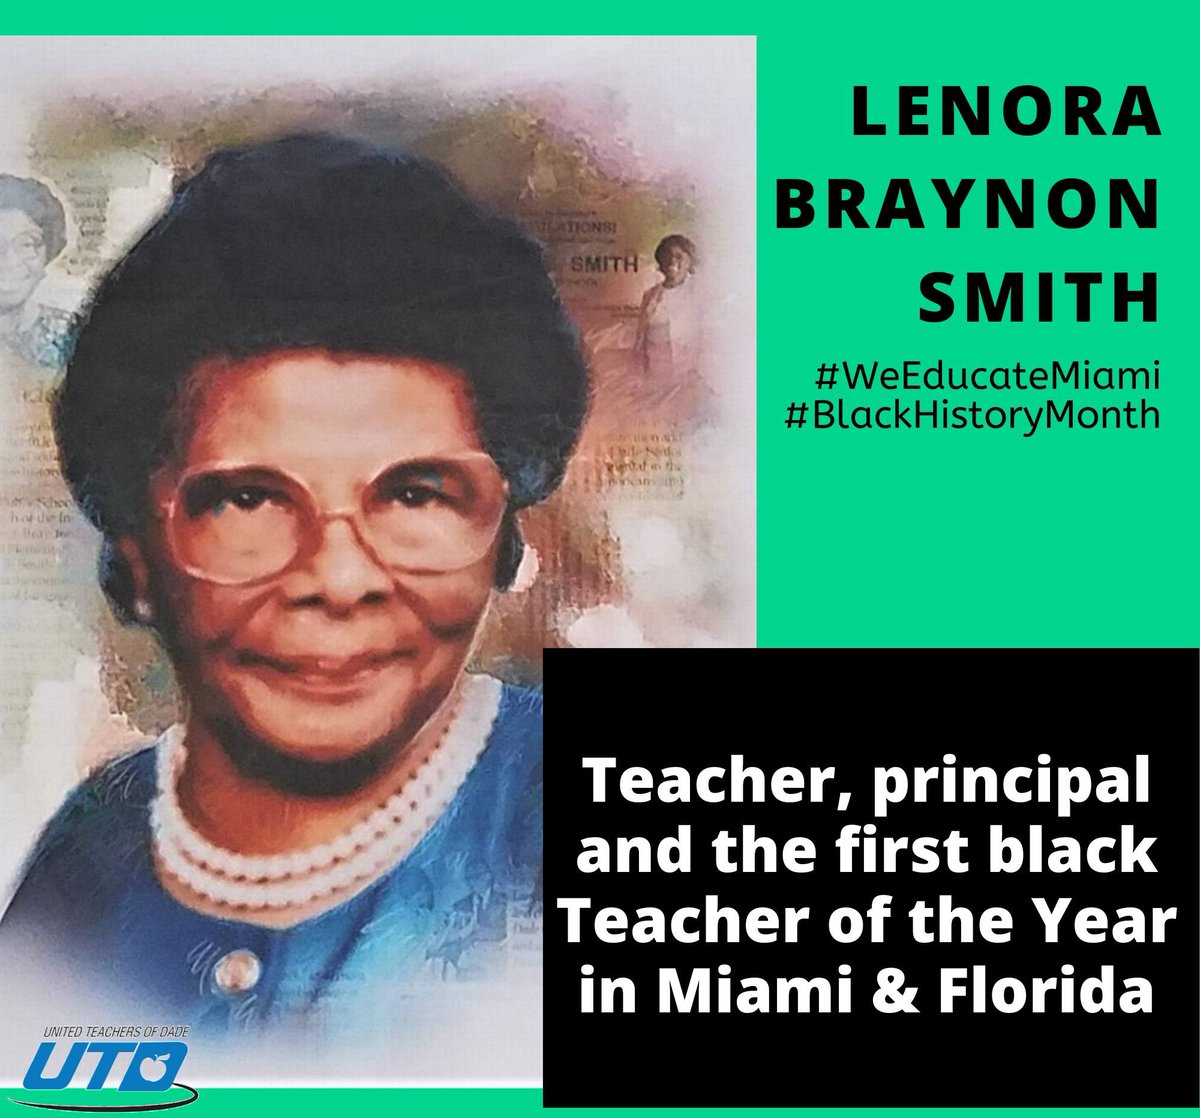 """One may never see a good teacher. It is what happens to those we teach that is important. It is in the child who reaches his potential that we see a good teacher."" #BlackHistoryMonth2020 #tuesdayMotivation #PublicEducation #WeEducateMiamipic.twitter.com/yn84hkskL6"